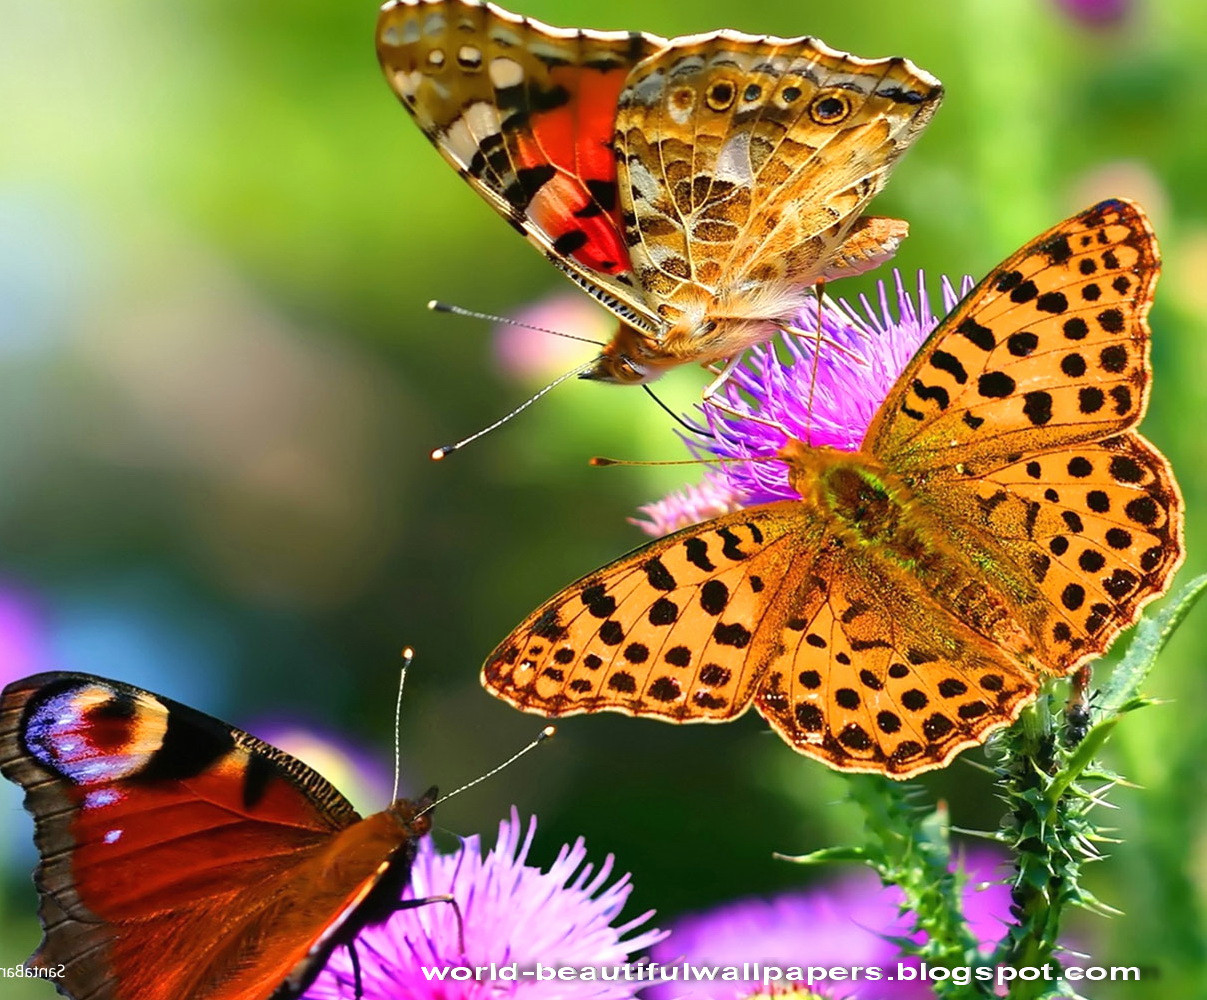 Beautiful Butterfly Pictures New Beautiful Wallpapers - Nature Animals Images Hd , HD Wallpaper & Backgrounds